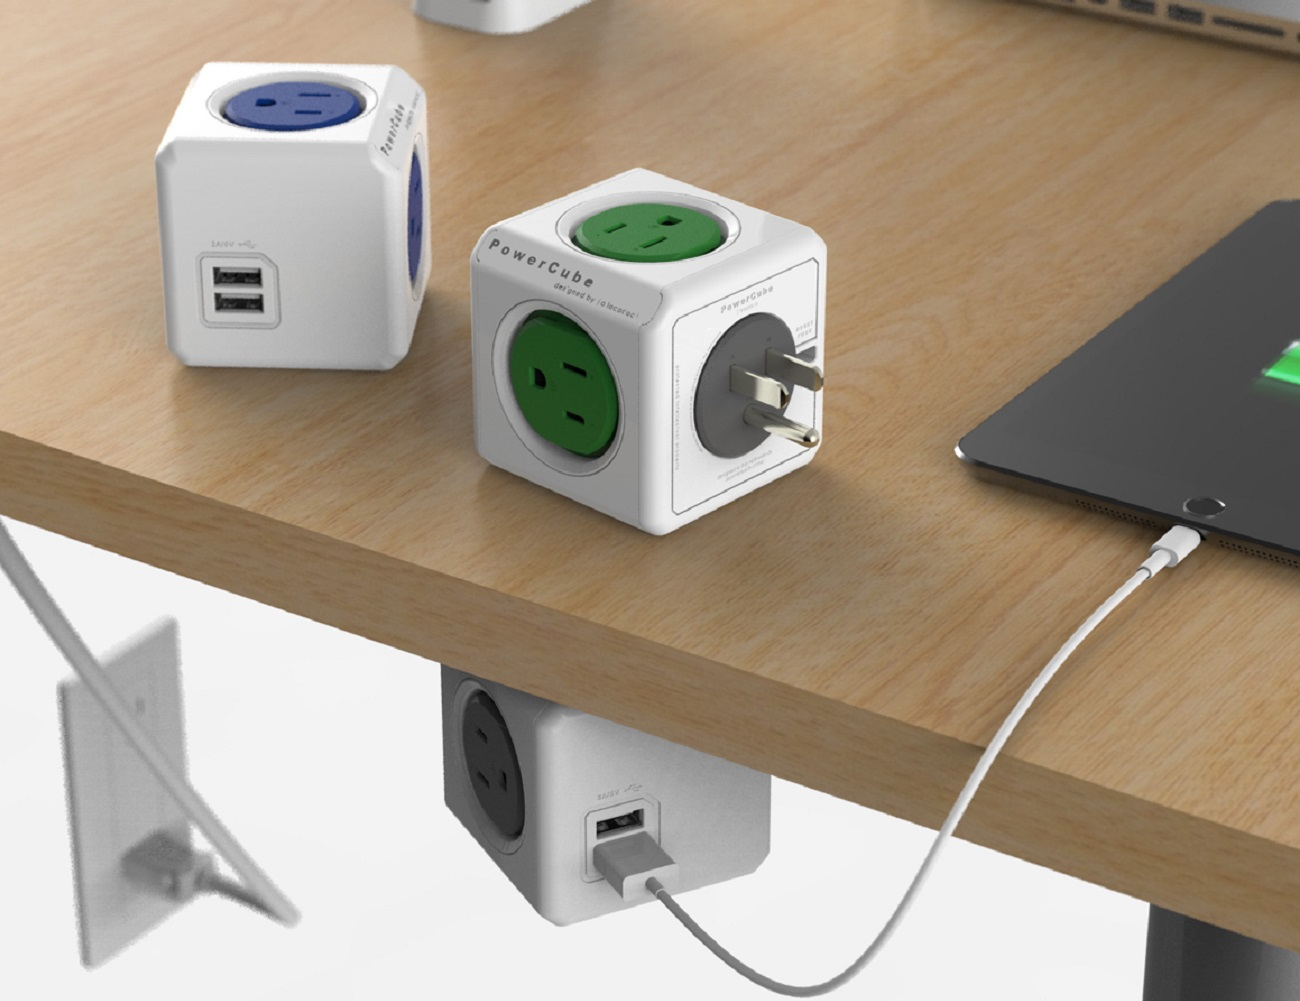 Powercube Extended Usb Electric Outlet Adapter 5ft